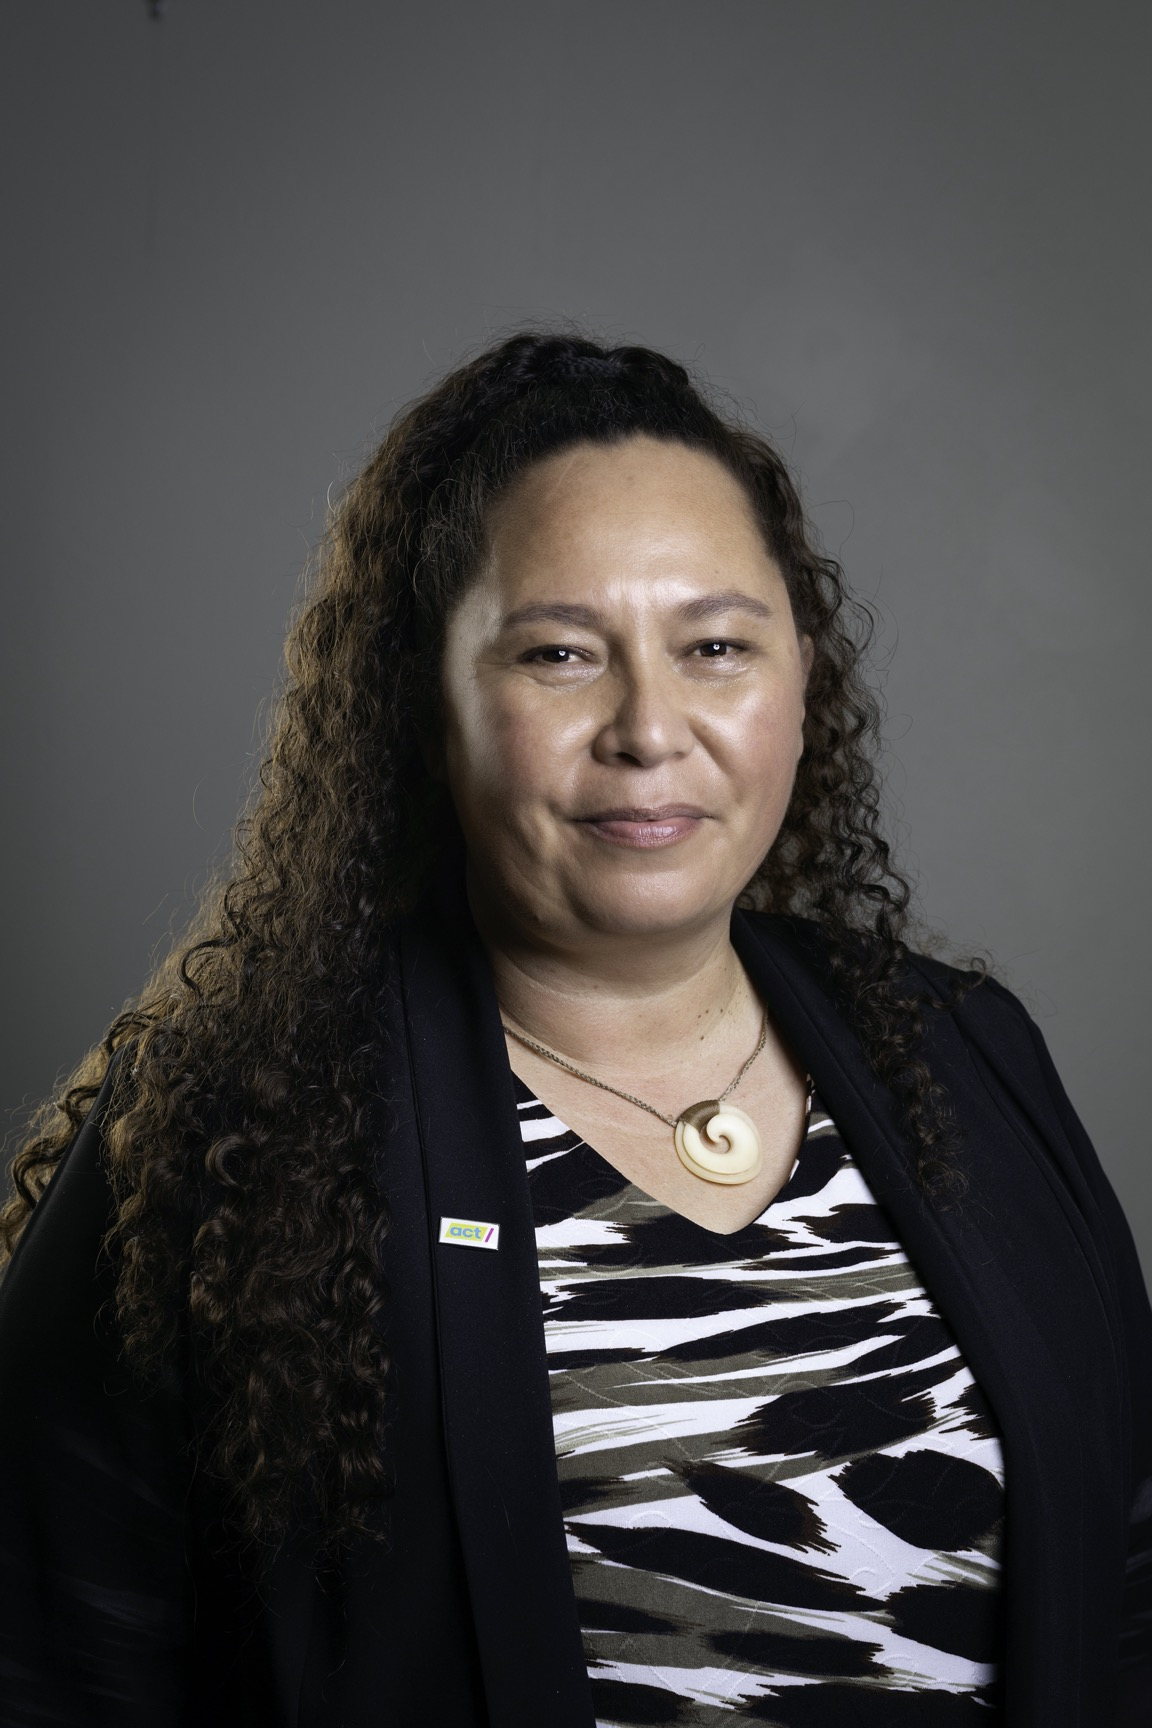 Nicole McKee, ACT Candidate for Rongotai